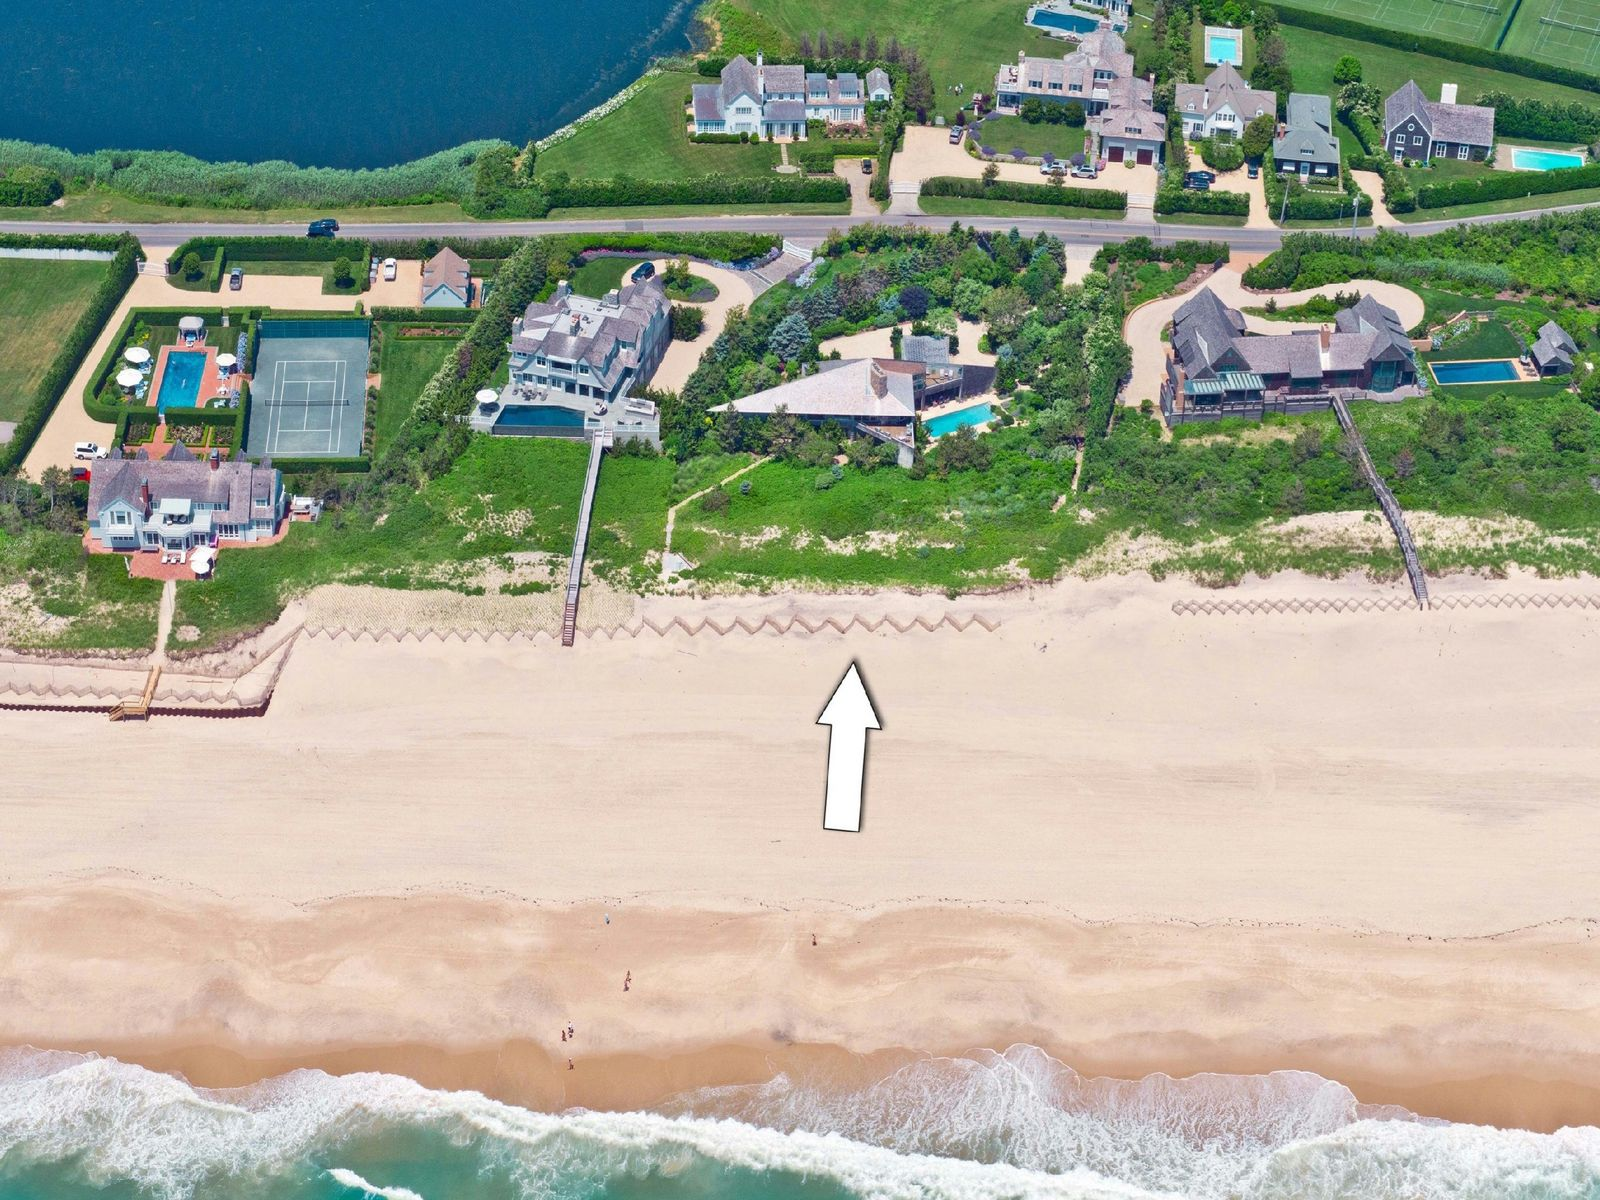 Oceanfront Southampton, Southampton NY Single Family Home - Hamptons Real Estate